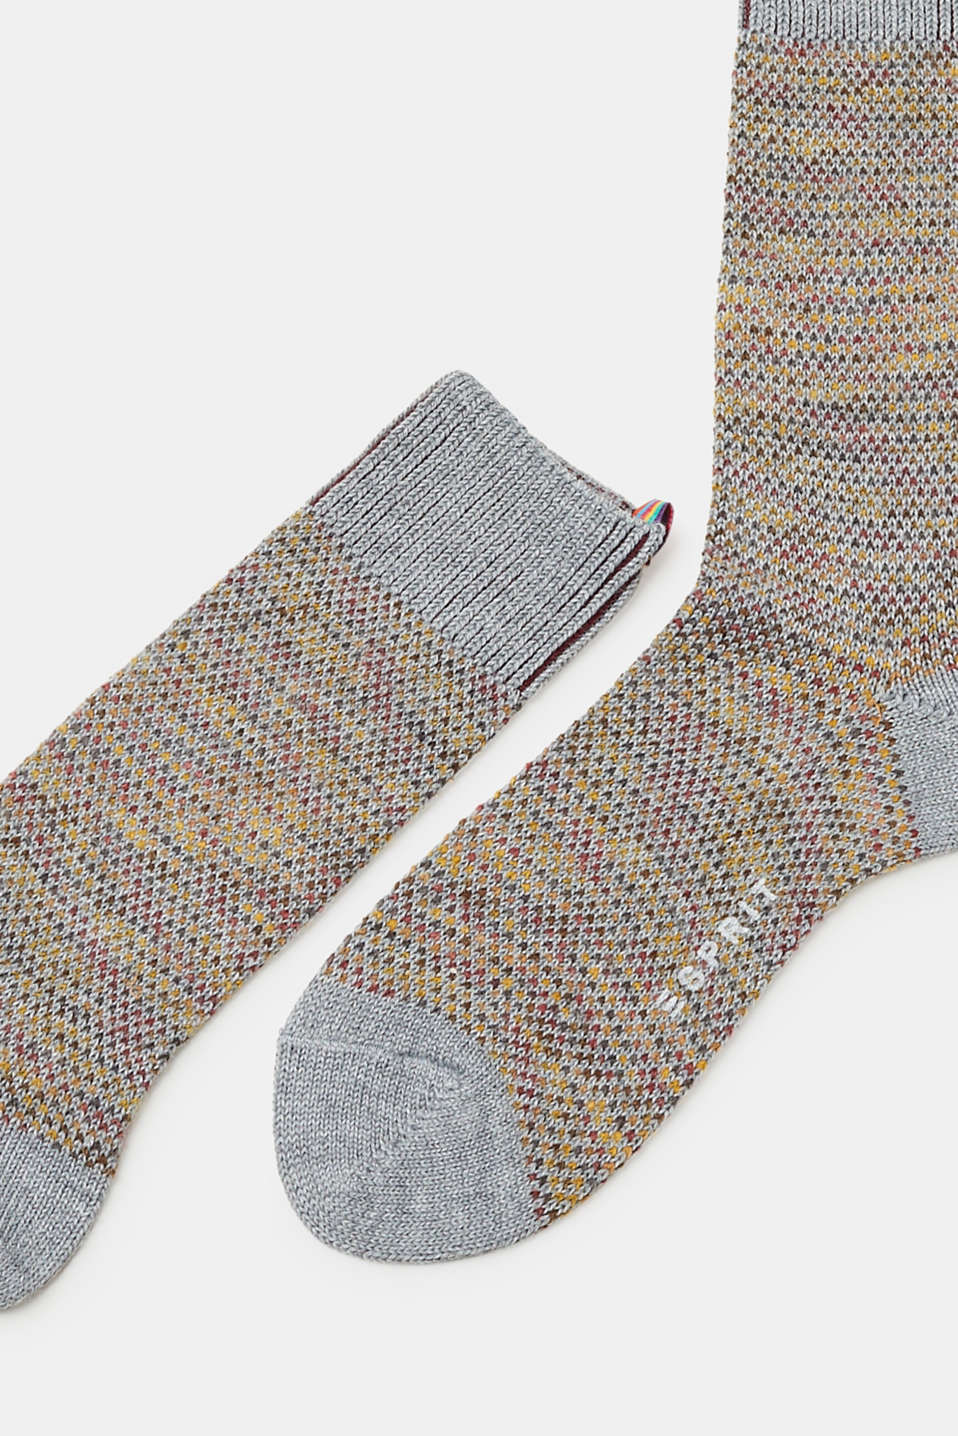 With wool: Knitted socks